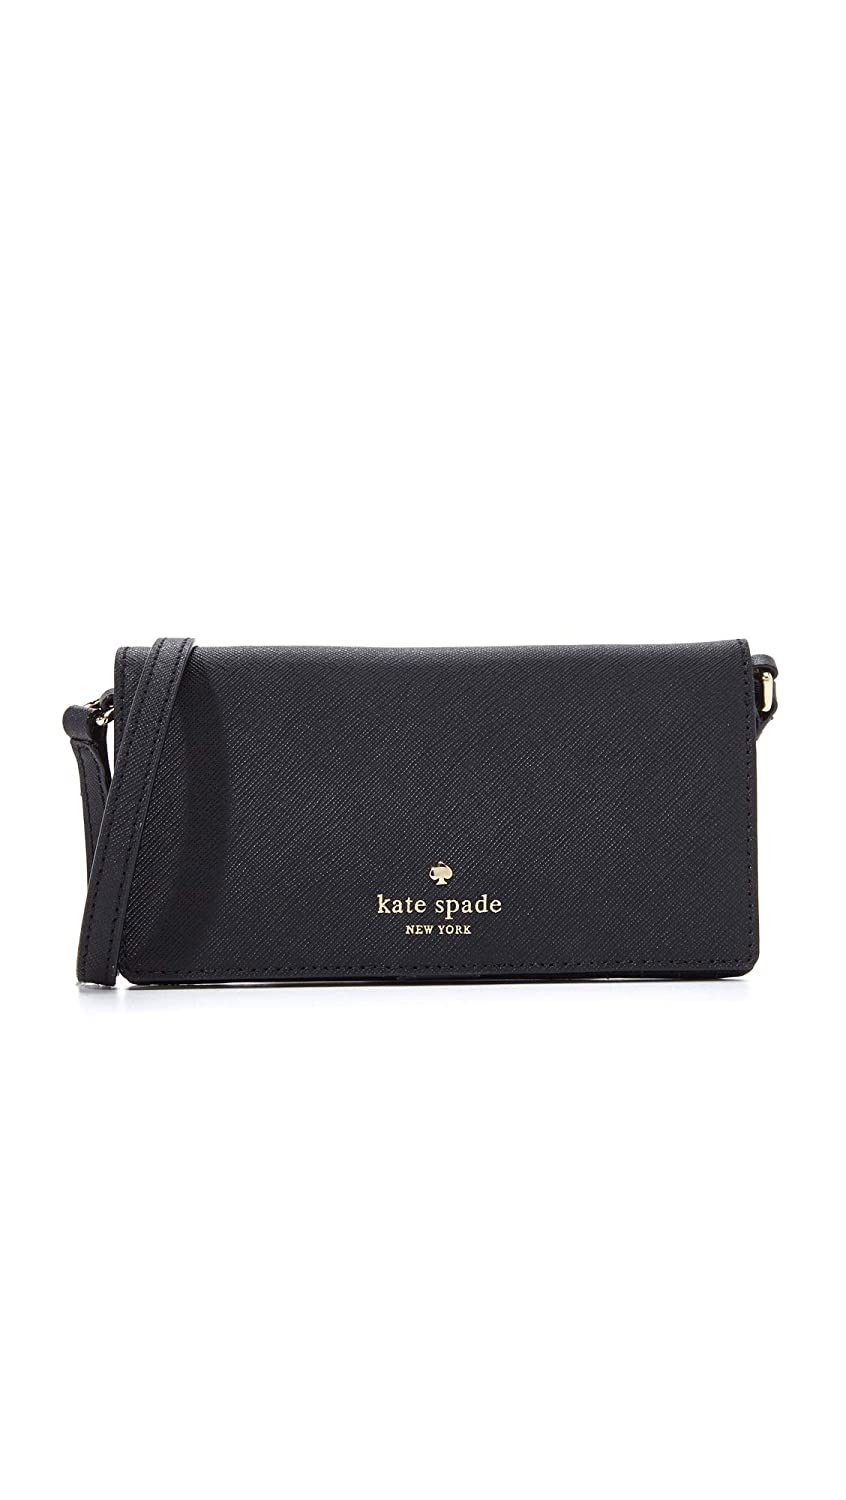 separation shoes 87109 716b8 Amazon.com: Kate Spade New York Crossbody iPhone Case for iPhone 6 ...